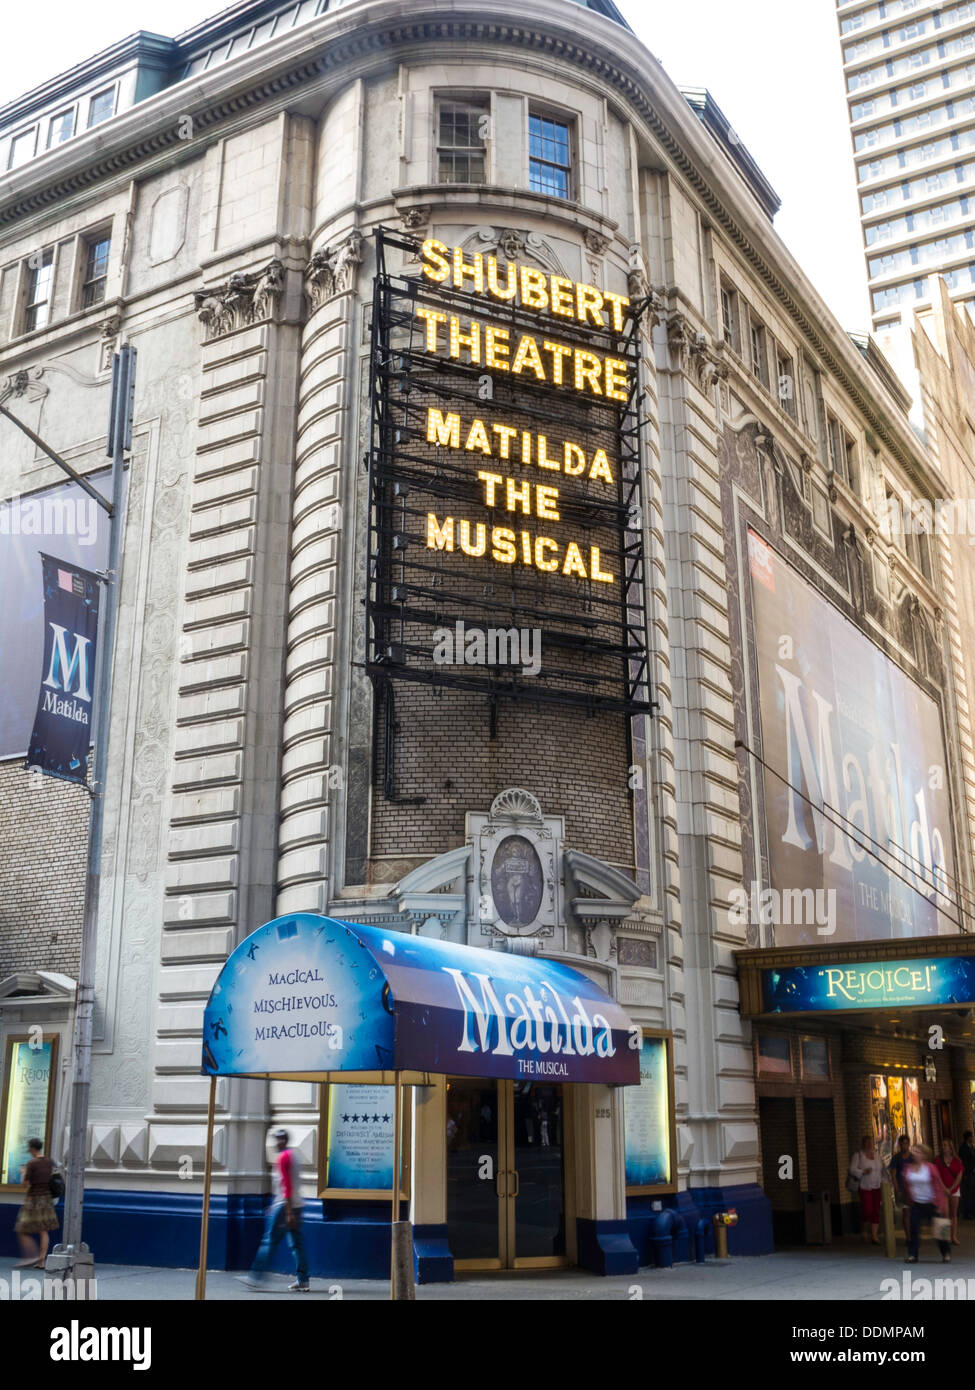 """Shubert Theatre Marquee, """"Matilda The Musical"""", Times"""